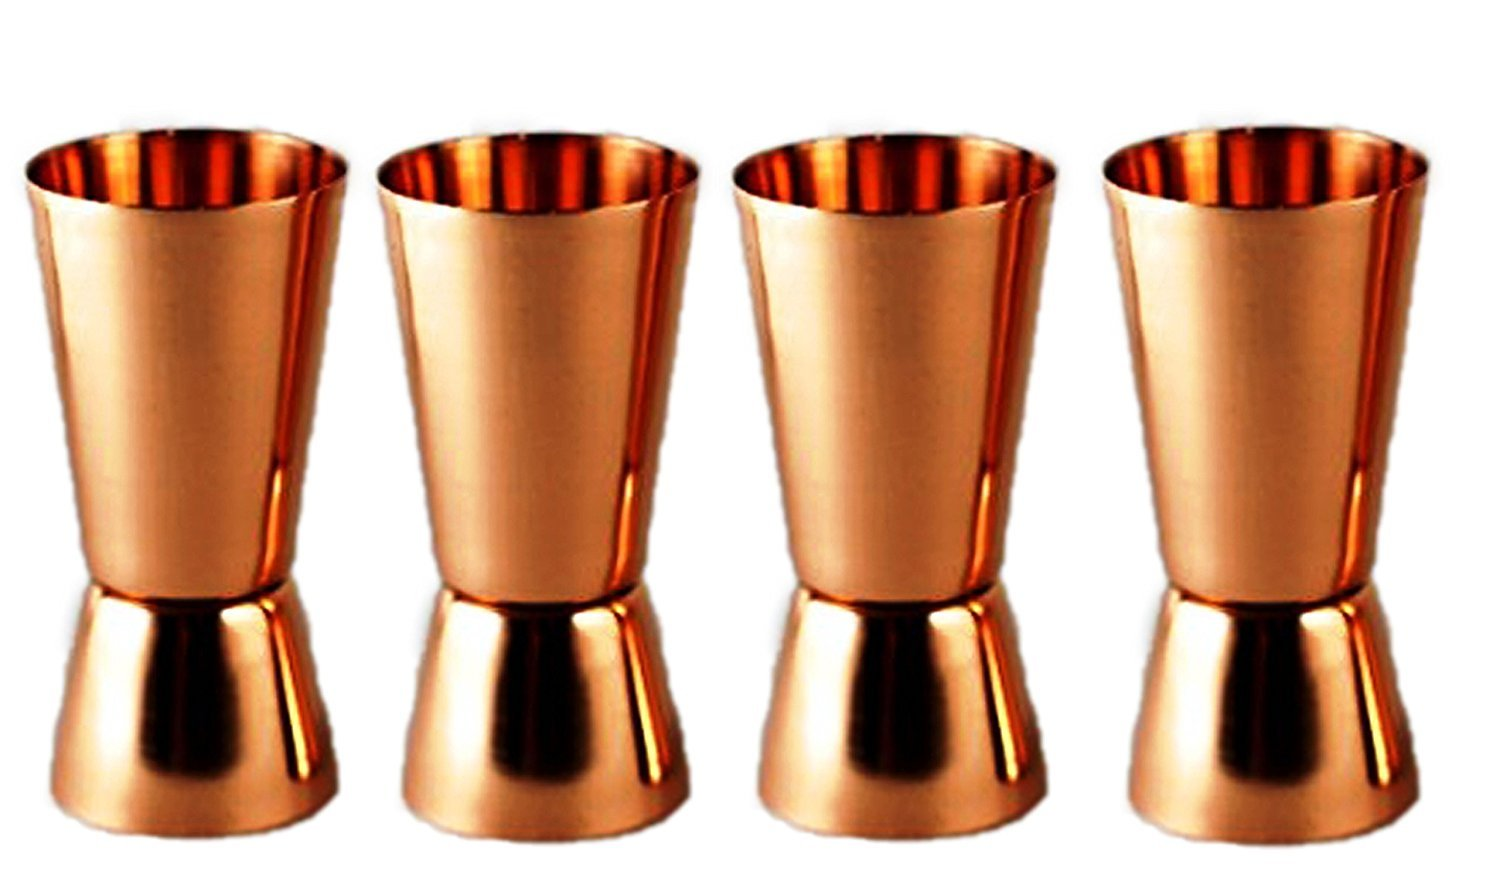 PARIJAT HANDICRAFT Set of 4 Pure Copper Measuring Jigger Shot Glasses Double Sided Jiggers - 2 Ounce and 1 Ounce.